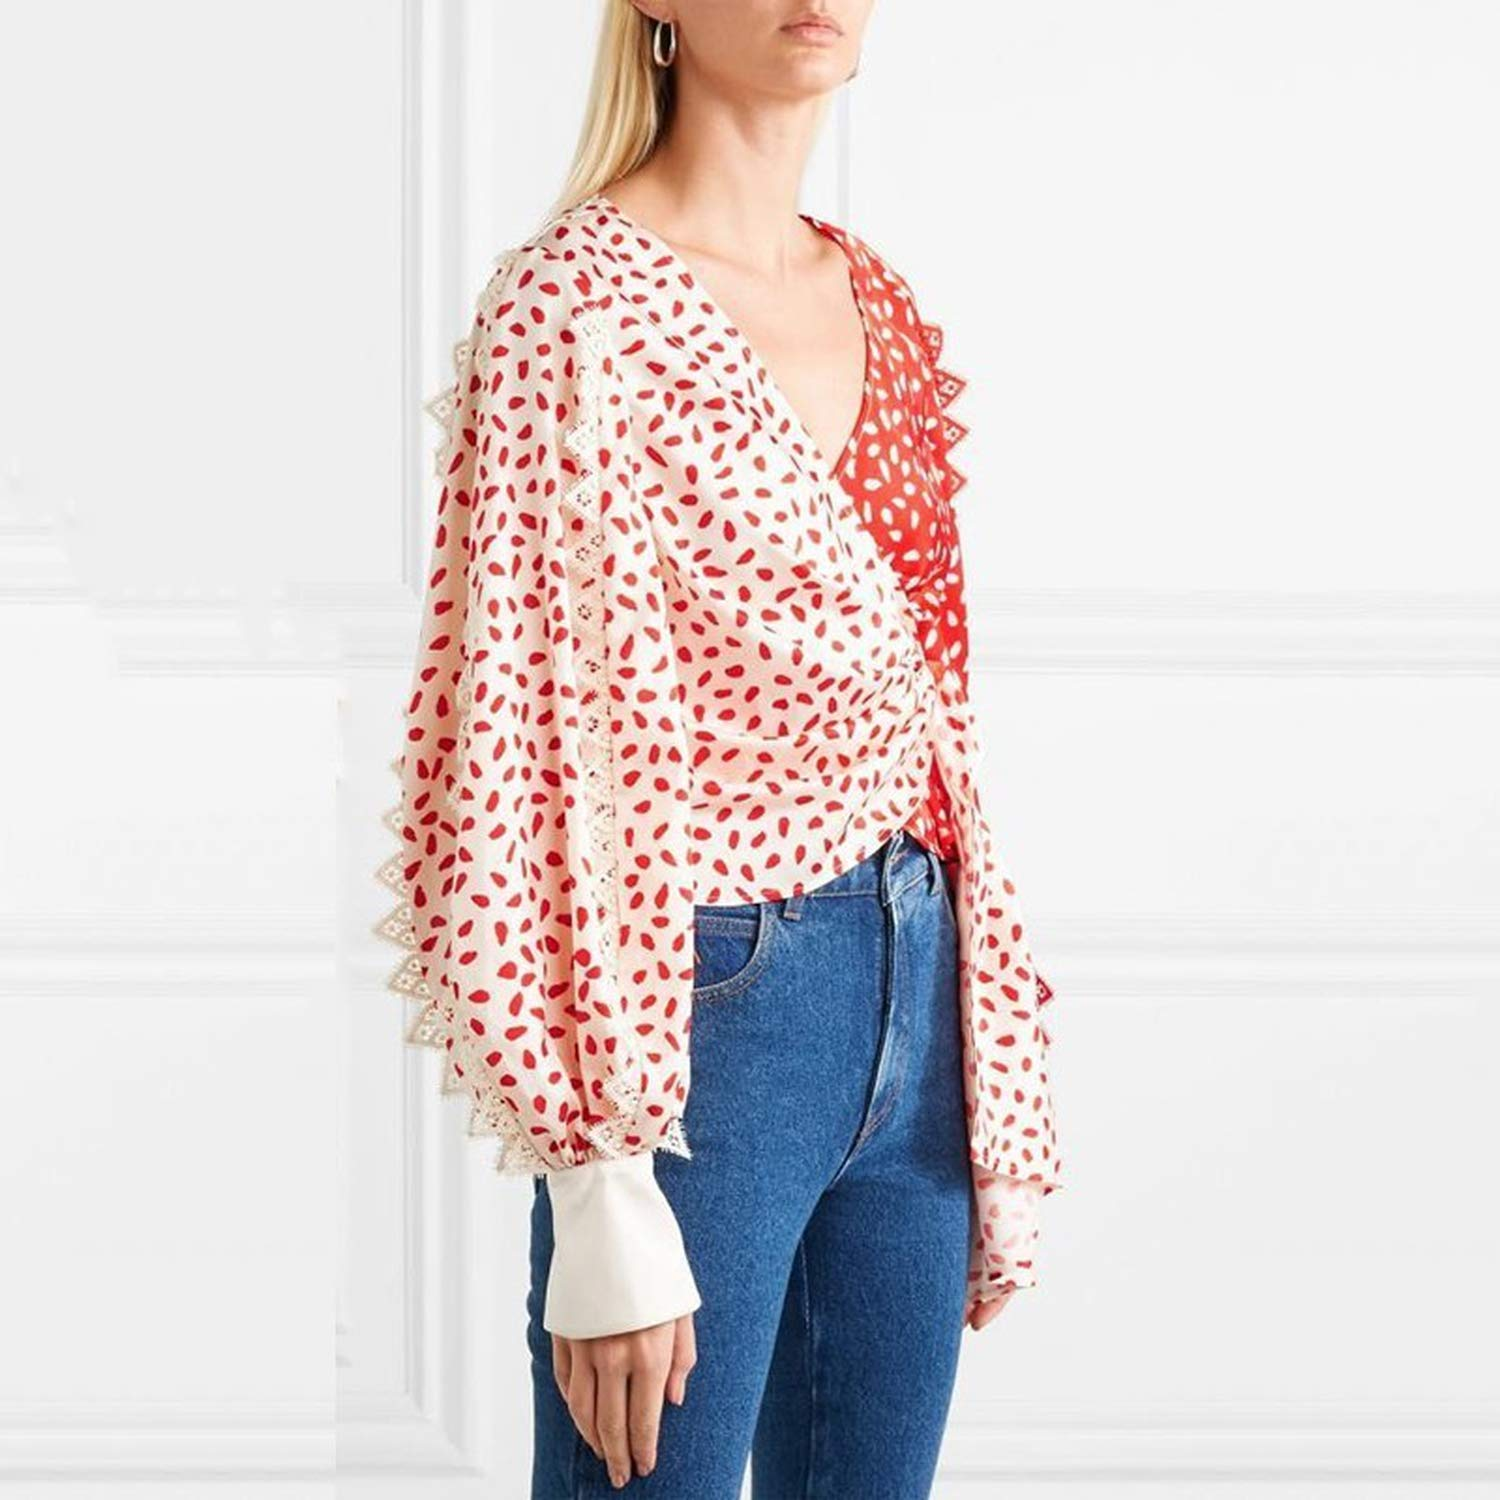 M Patchwork Lace Print Shirts Blouse Women V Neck Puff Sleeve Bandage Hit Colors Crop Tops Female 2019 Spring Fashion